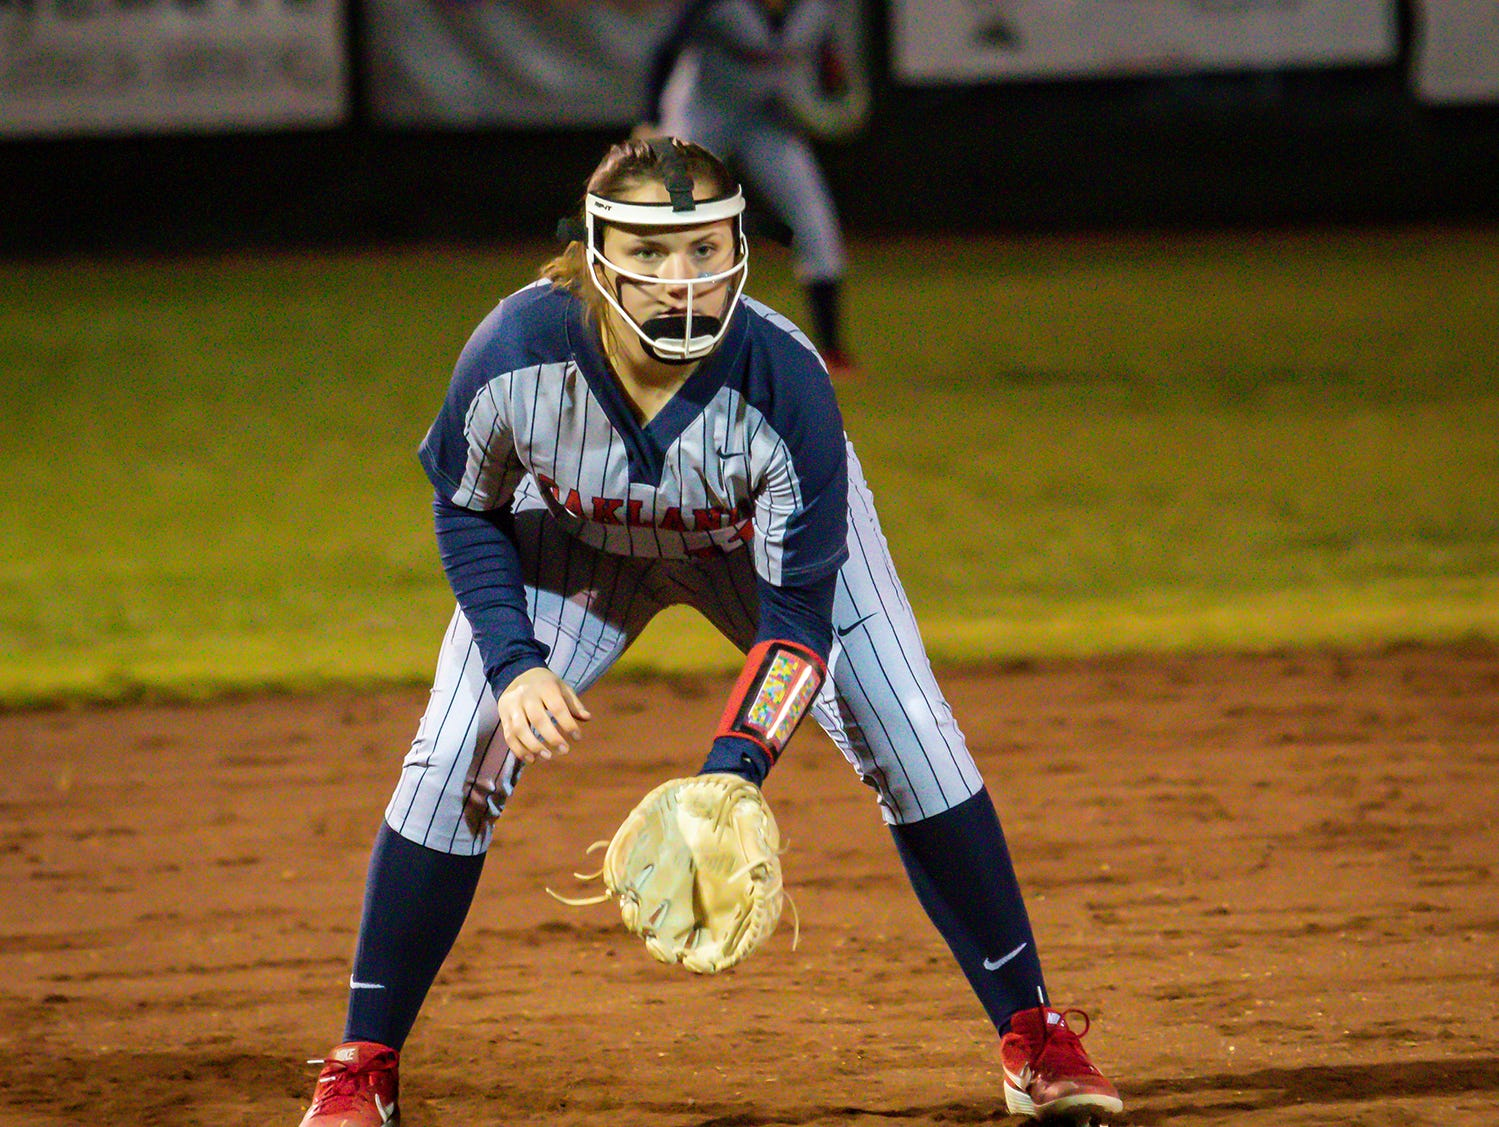 Oakland third baseman Aimee Hall awaits a pitch during Monday's game.